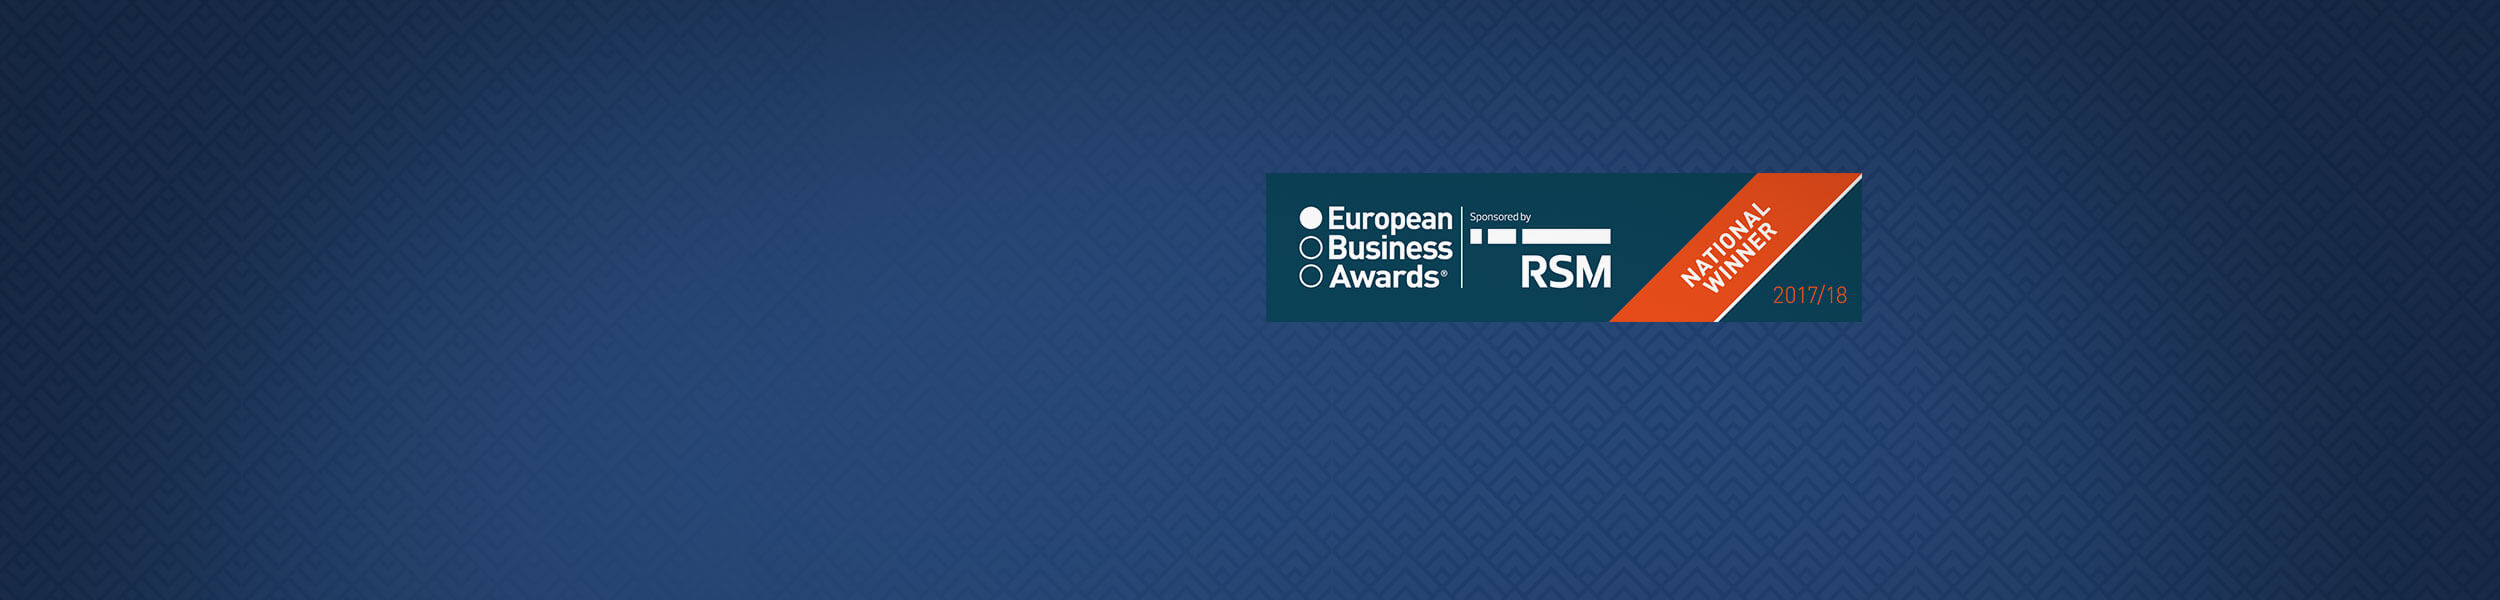 european business awards eleks